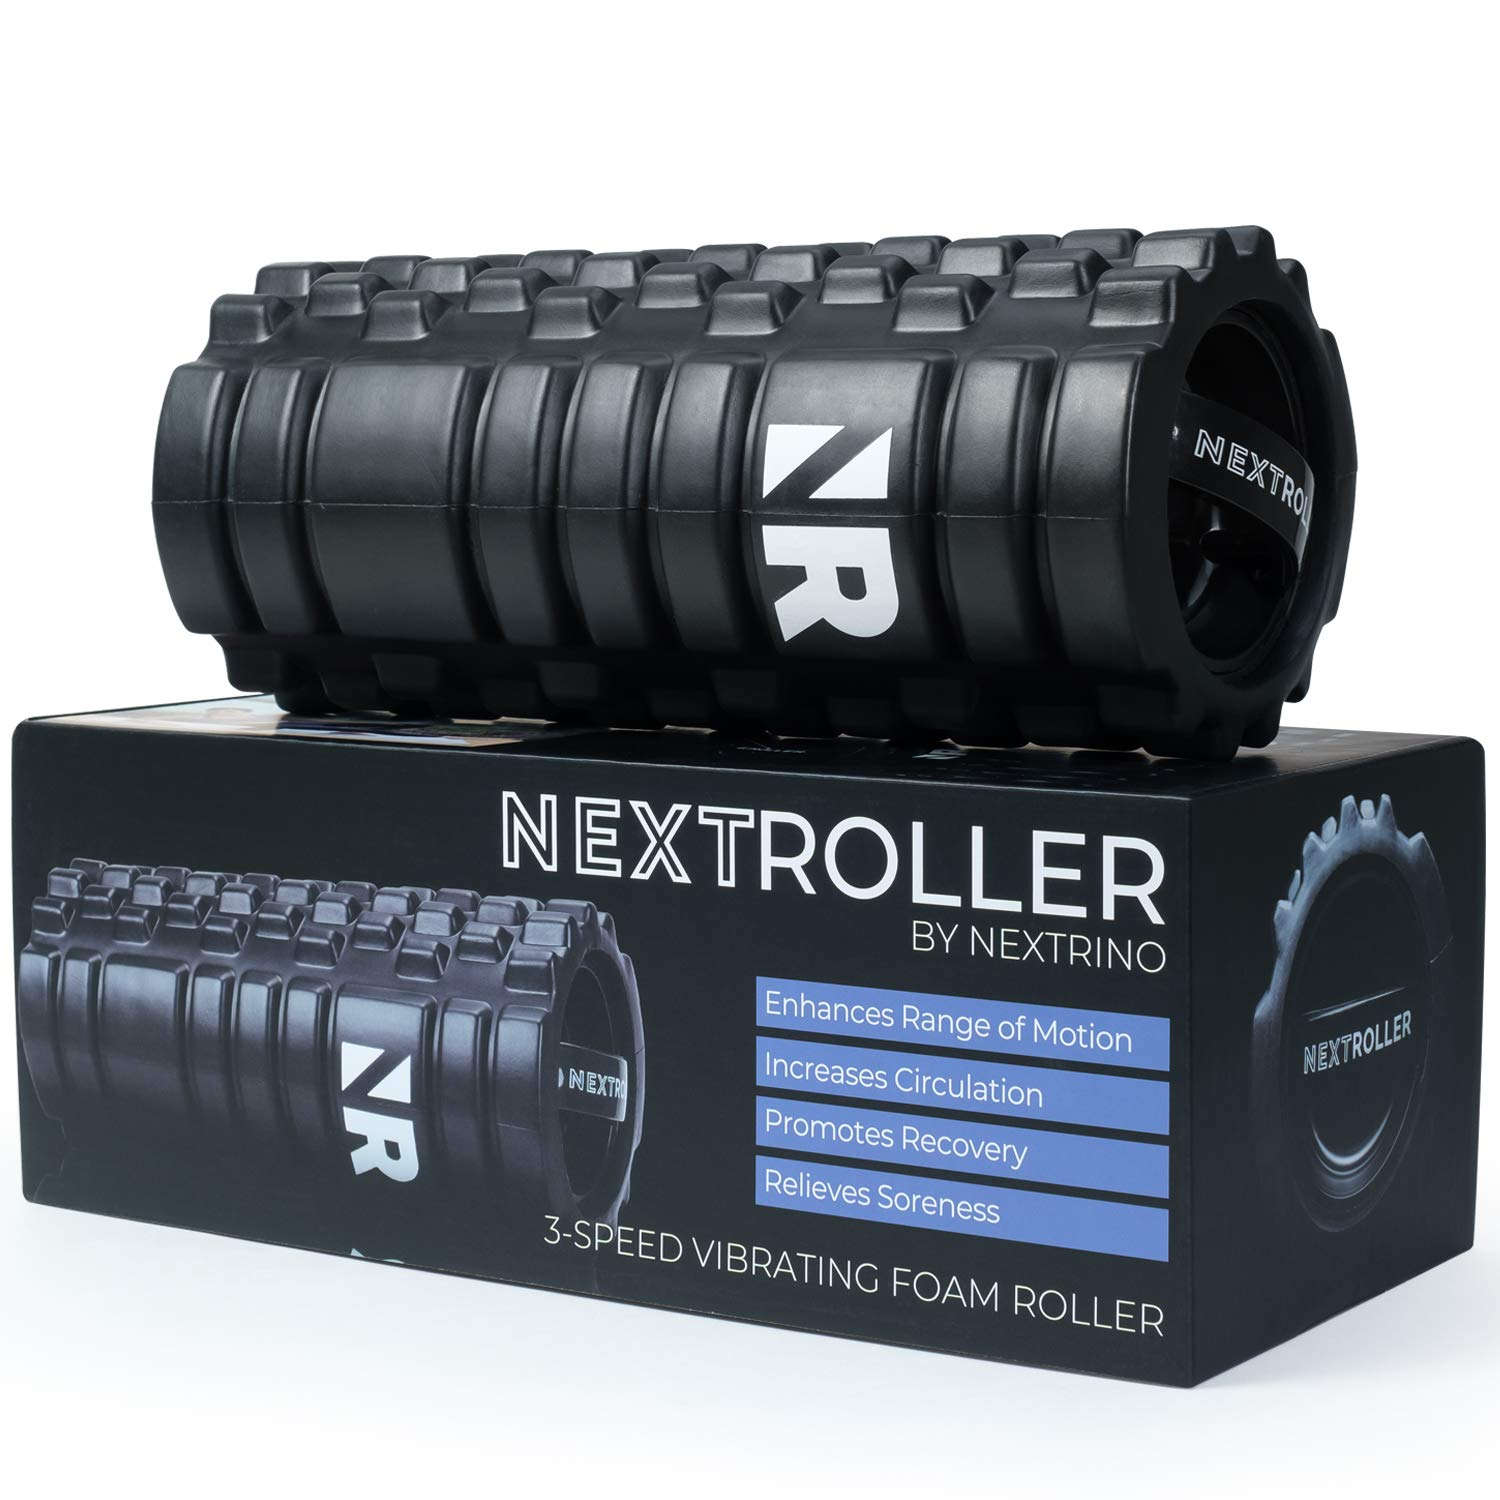 NextRoller 3 Speed Vibrating Foam Roller